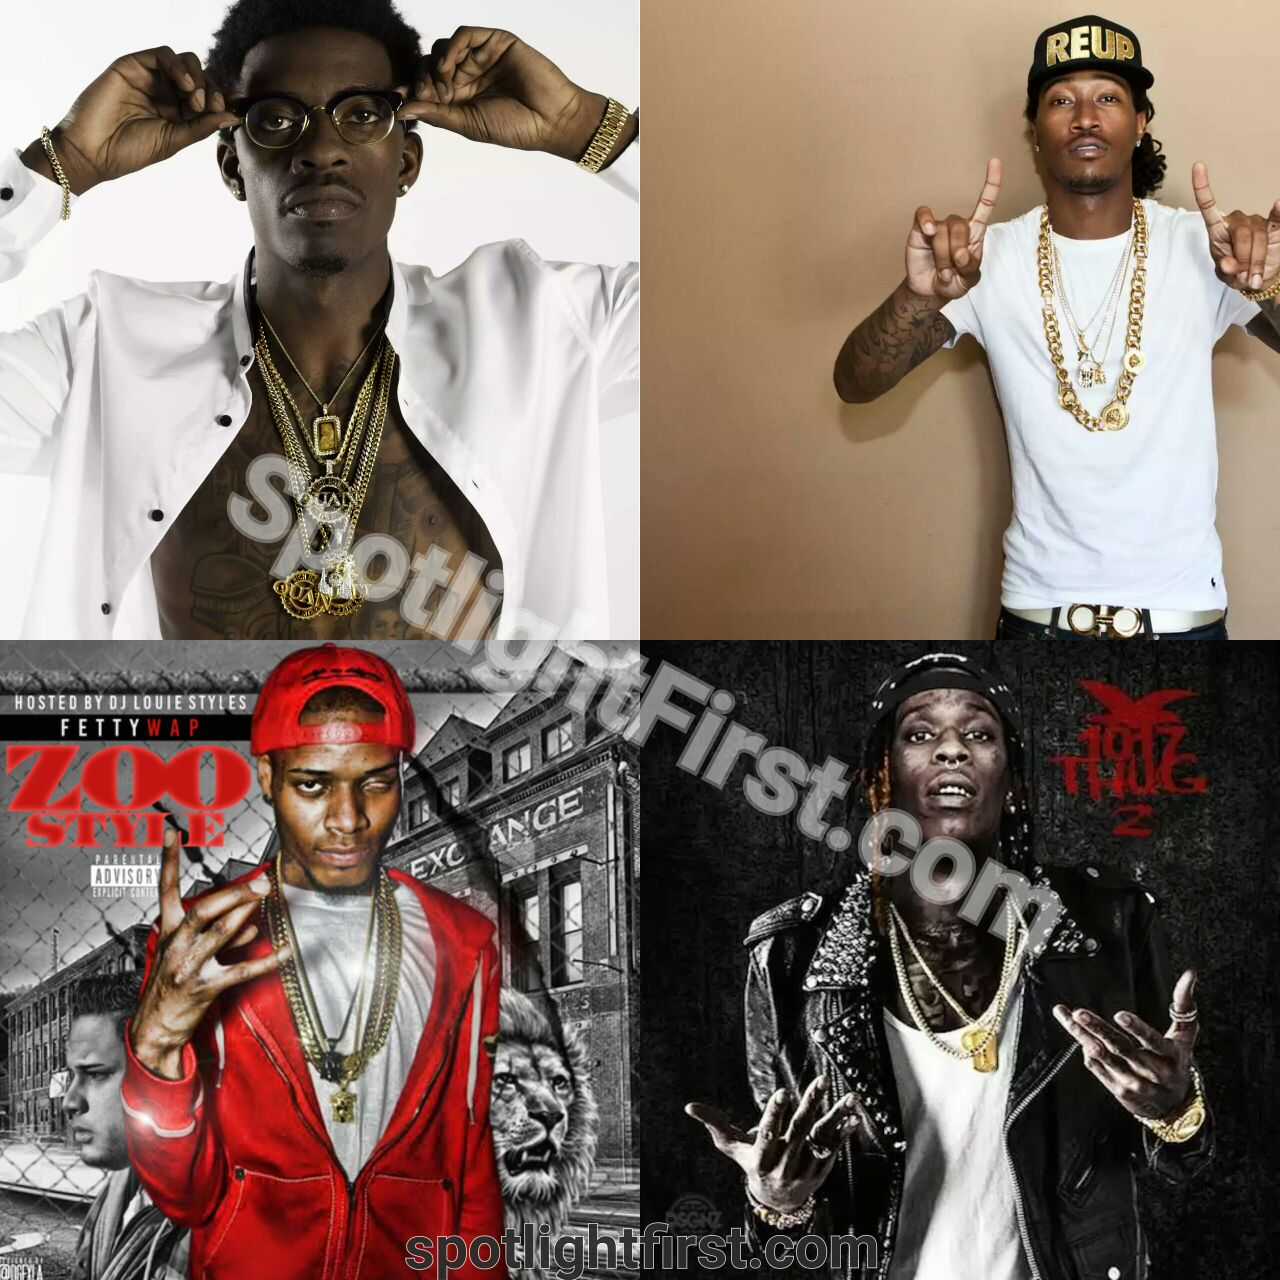 Future, Fetty Wap, Young Thug or Rich Homie Quan?